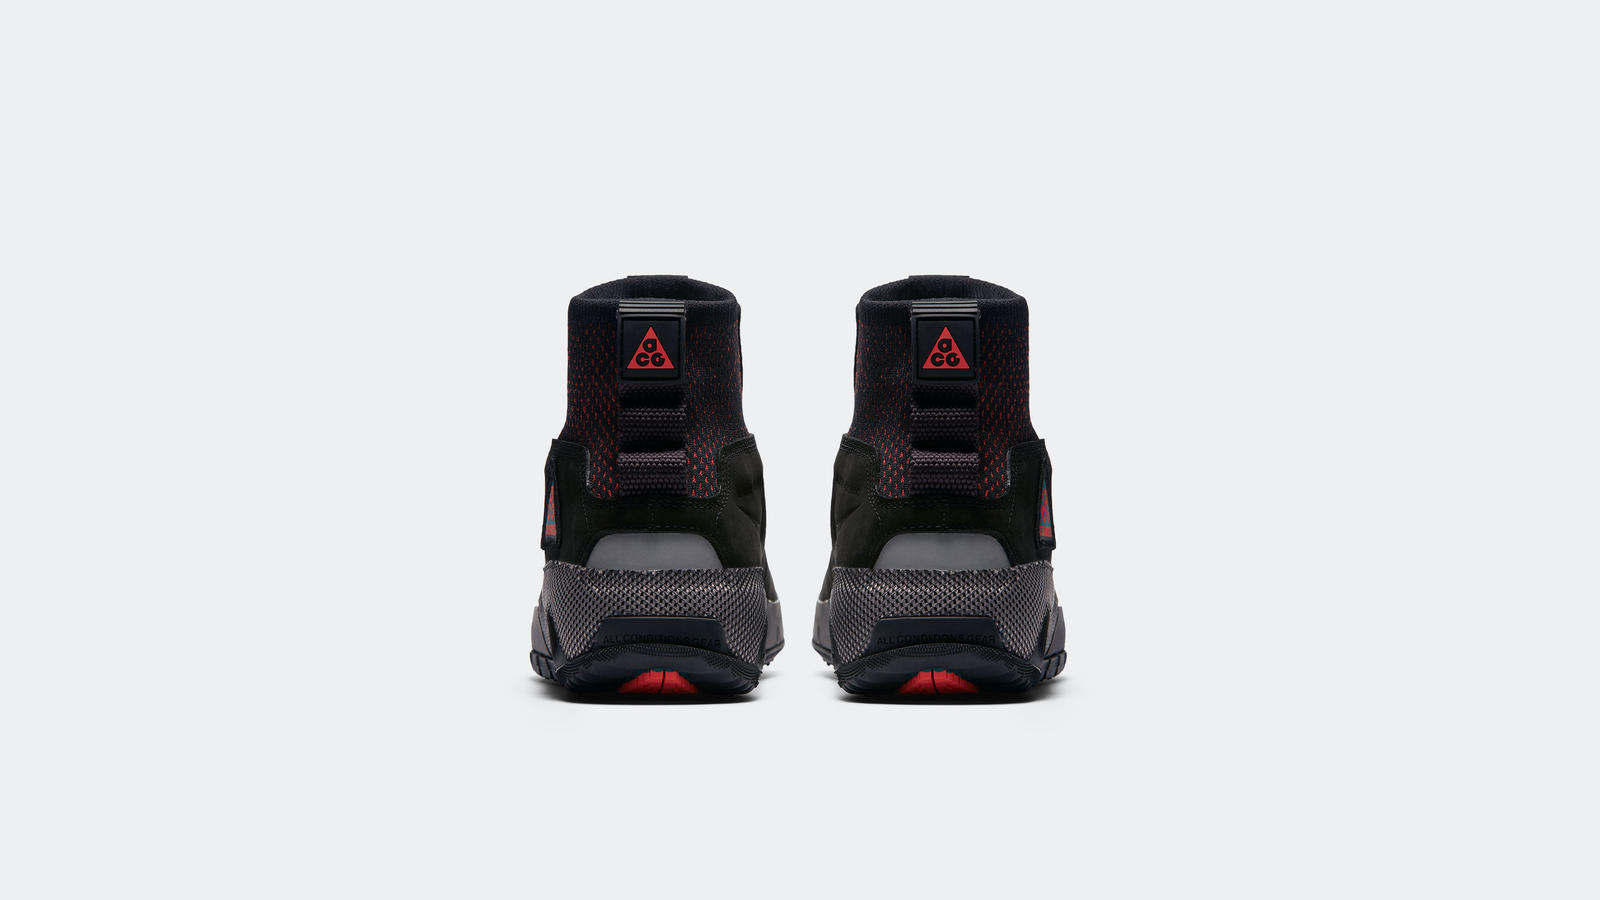 Acg rr black 5 hd 1600